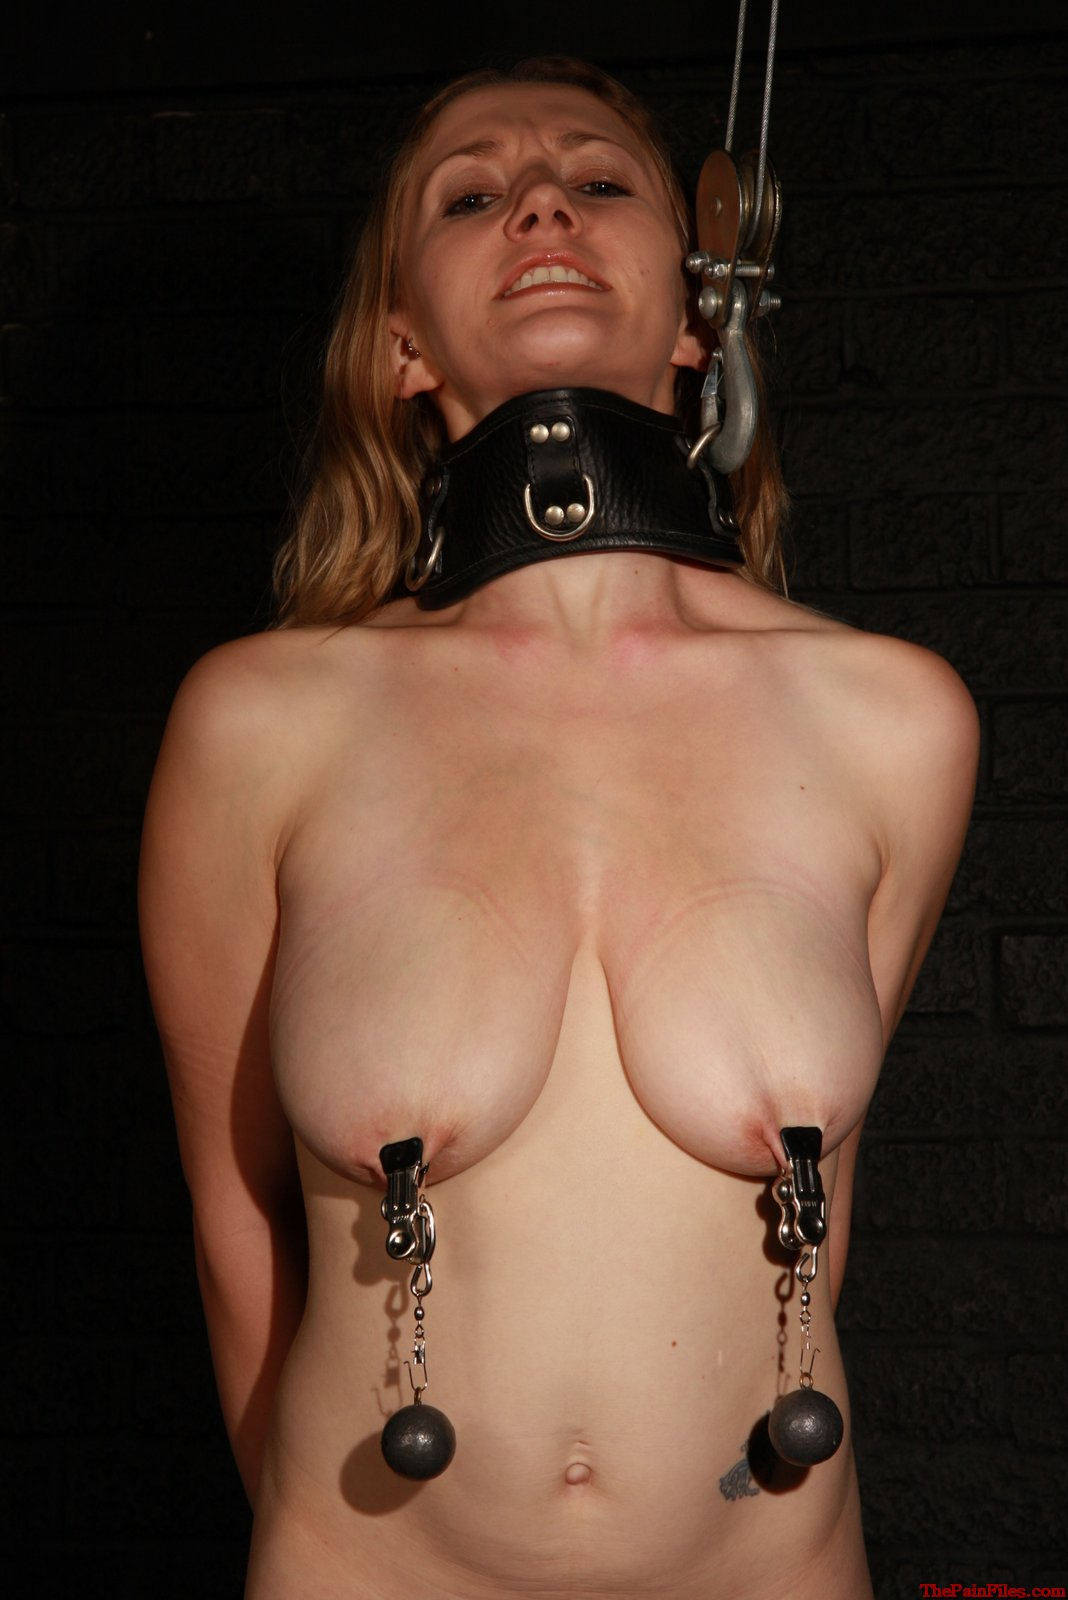 girl nipple pain Slave